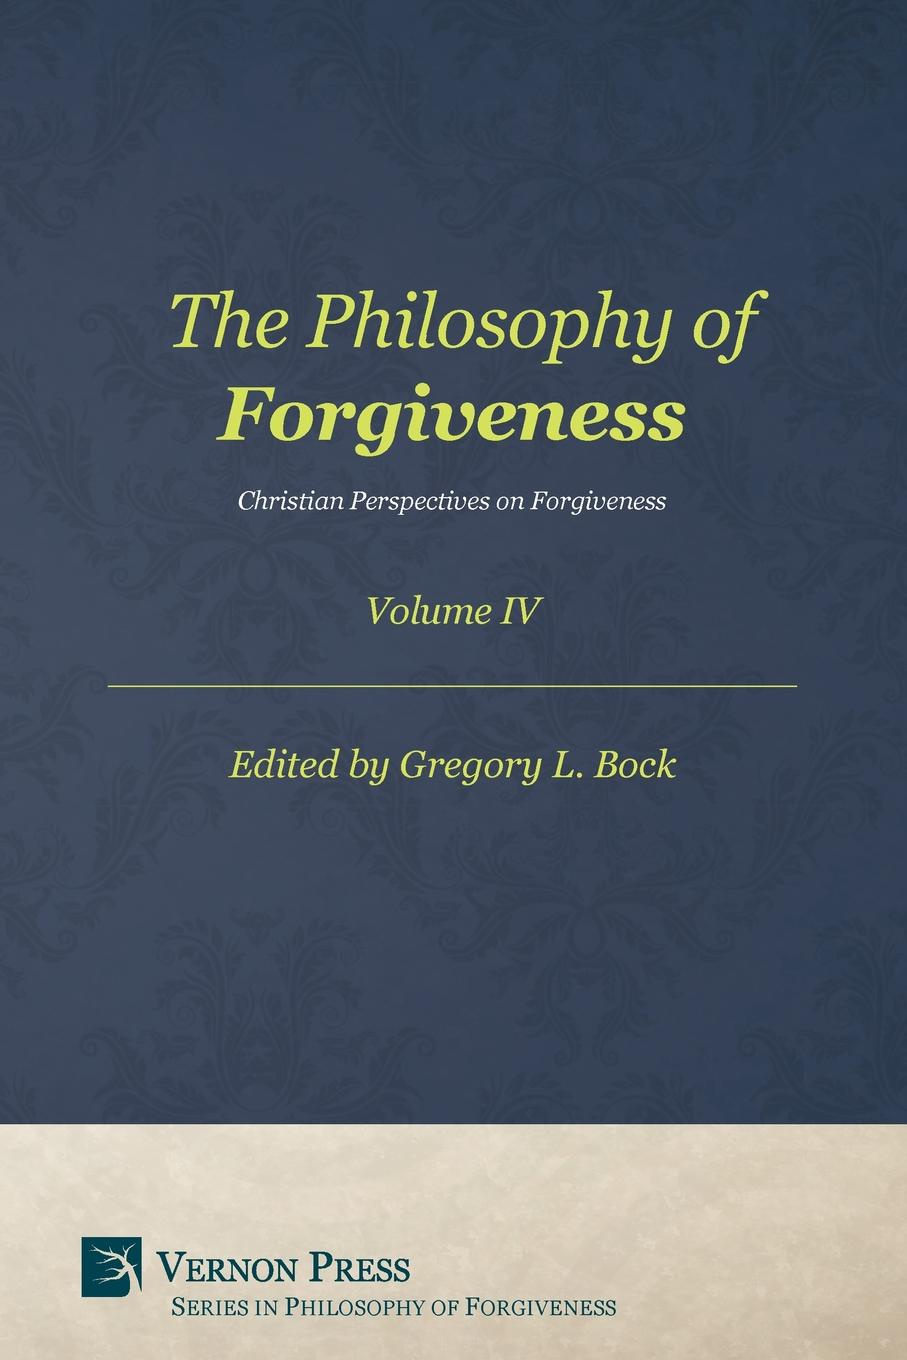 The Philosophy of Forgiveness - Volume IV. Christian Perspectives on Forgiveness alex bloch the journey to forgiveness